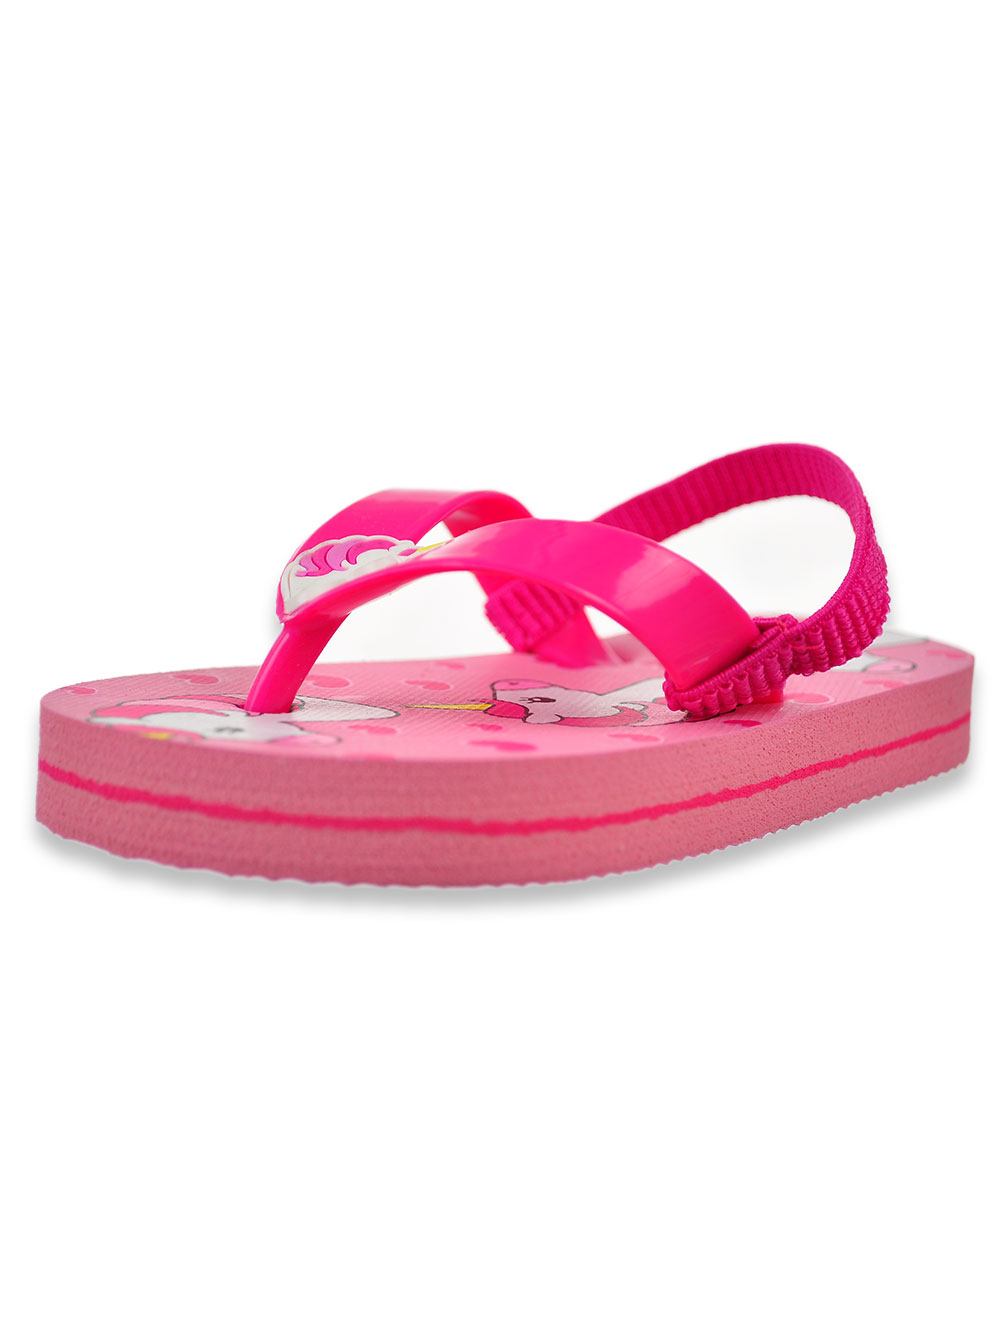 Girls Fuchsia Sandals